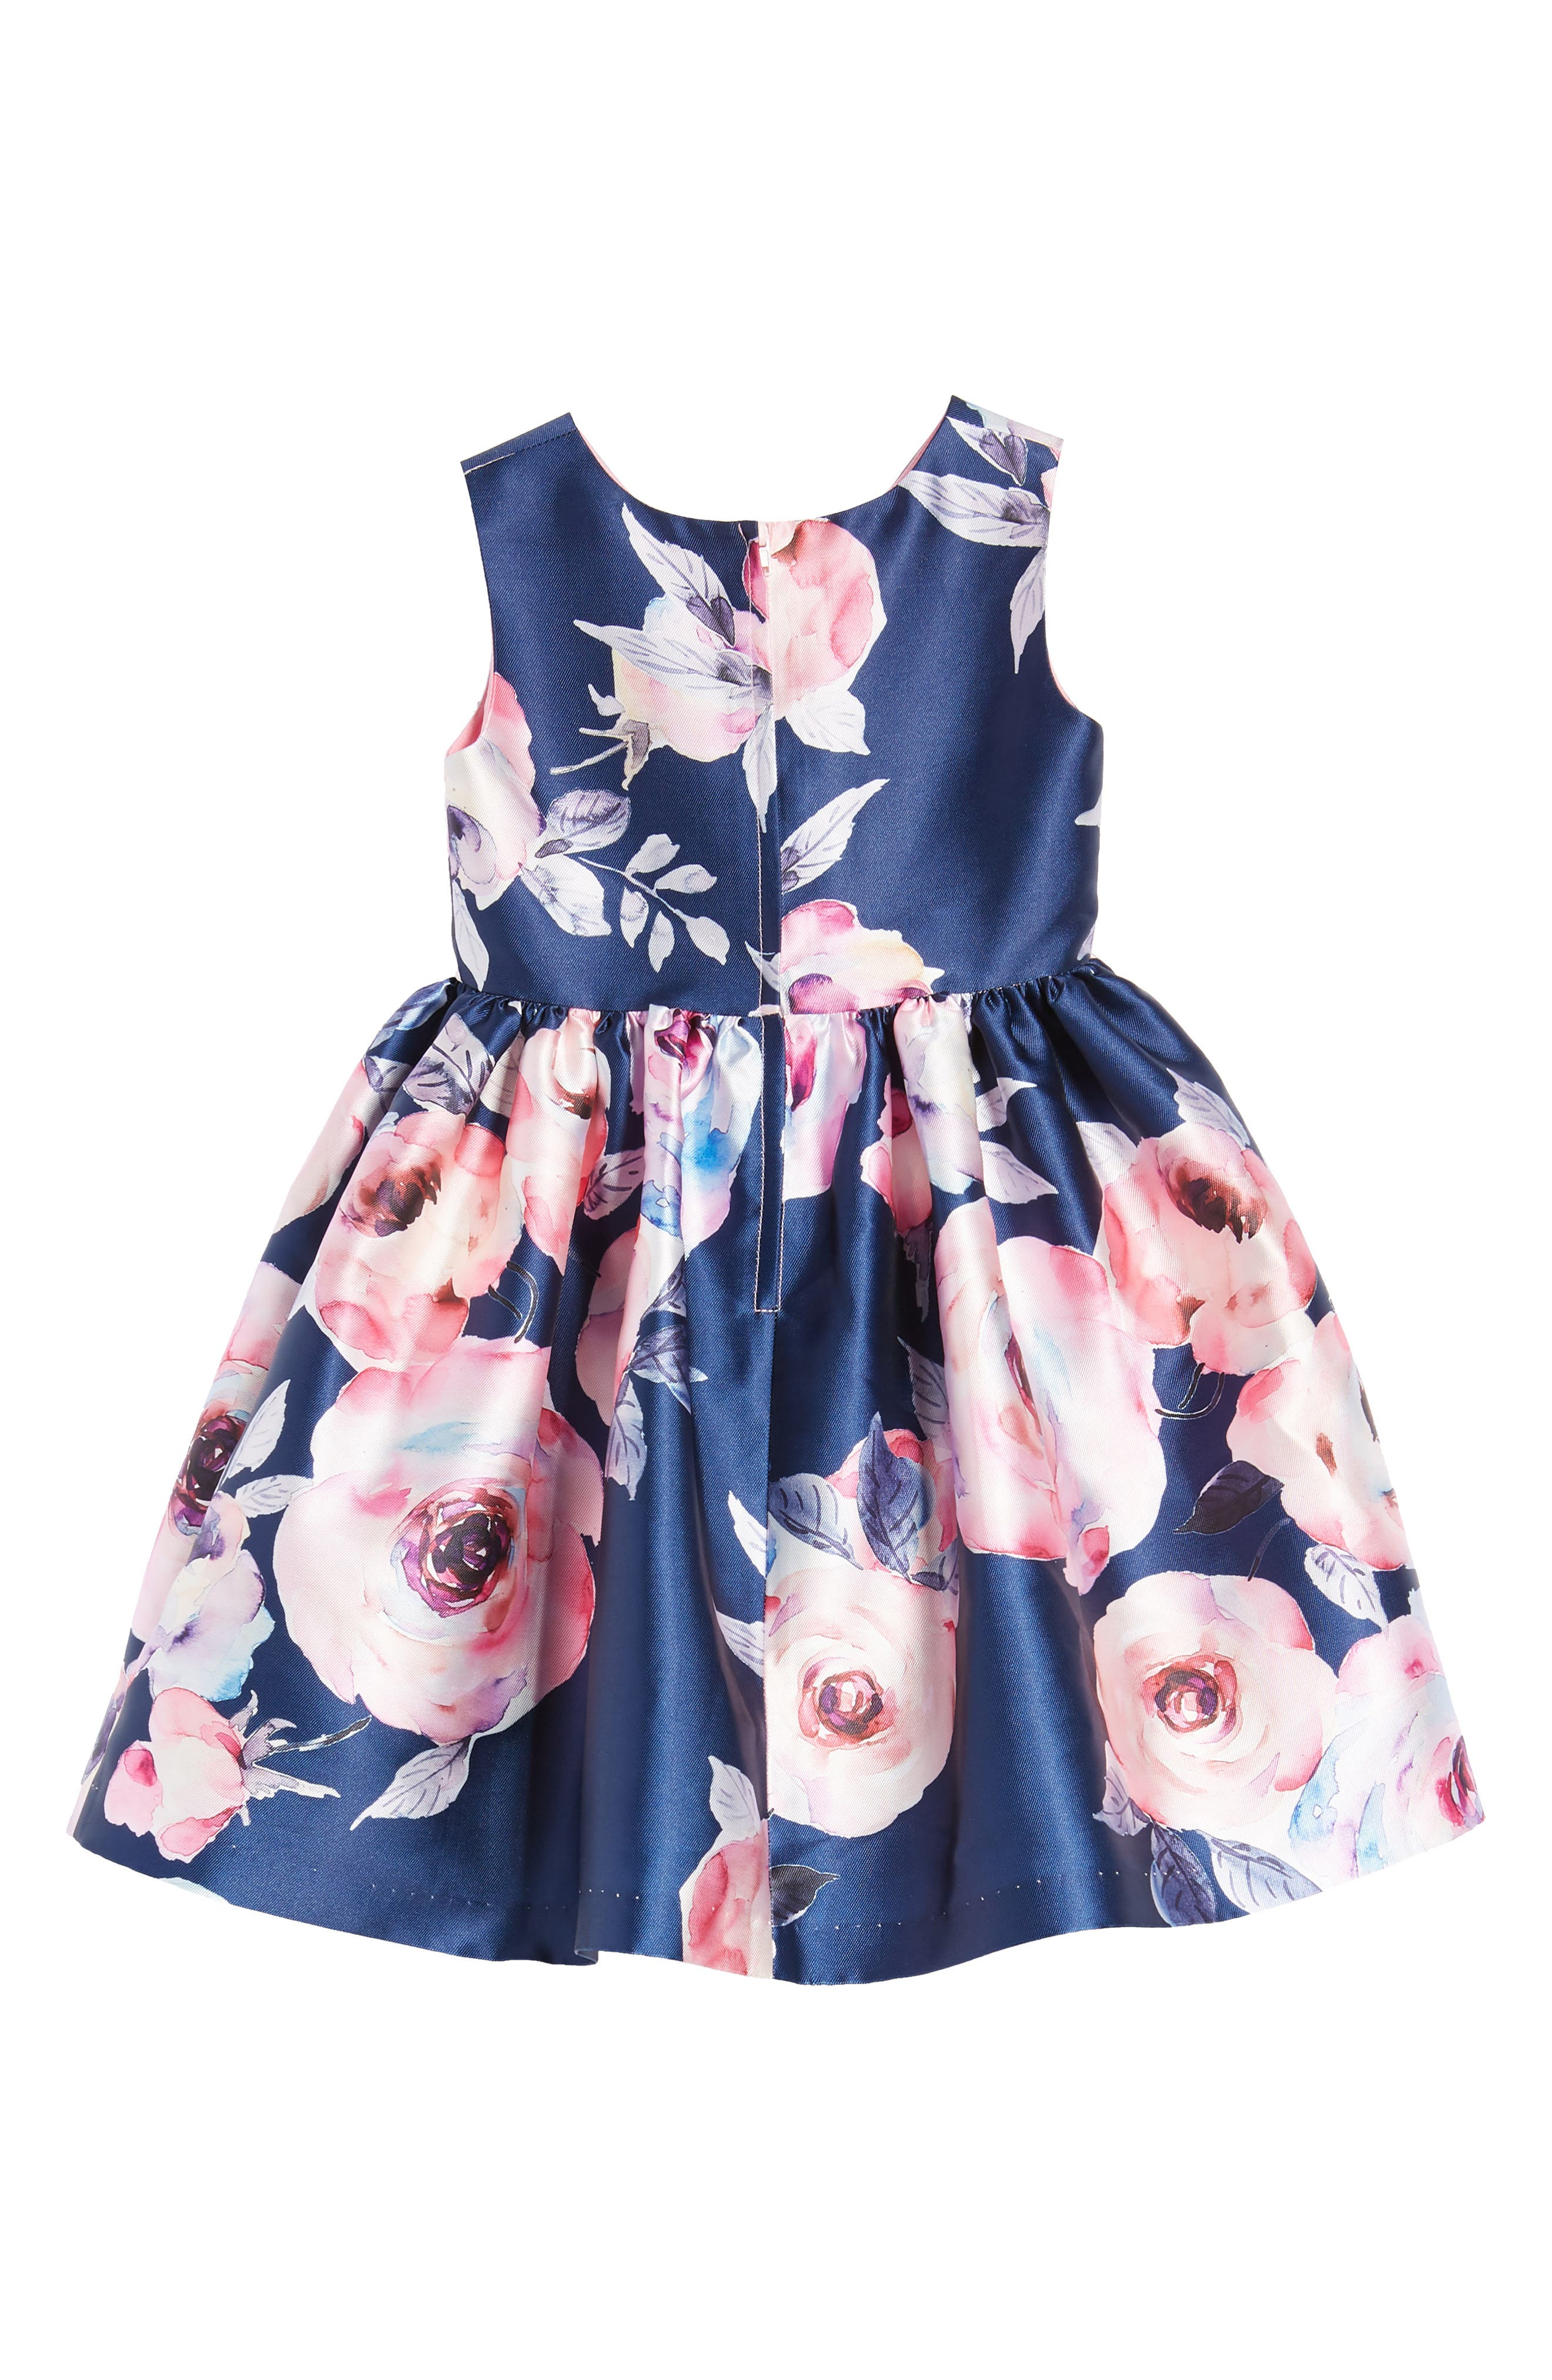 Floral Party Dress,                             Alternate thumbnail 2, color,                             410